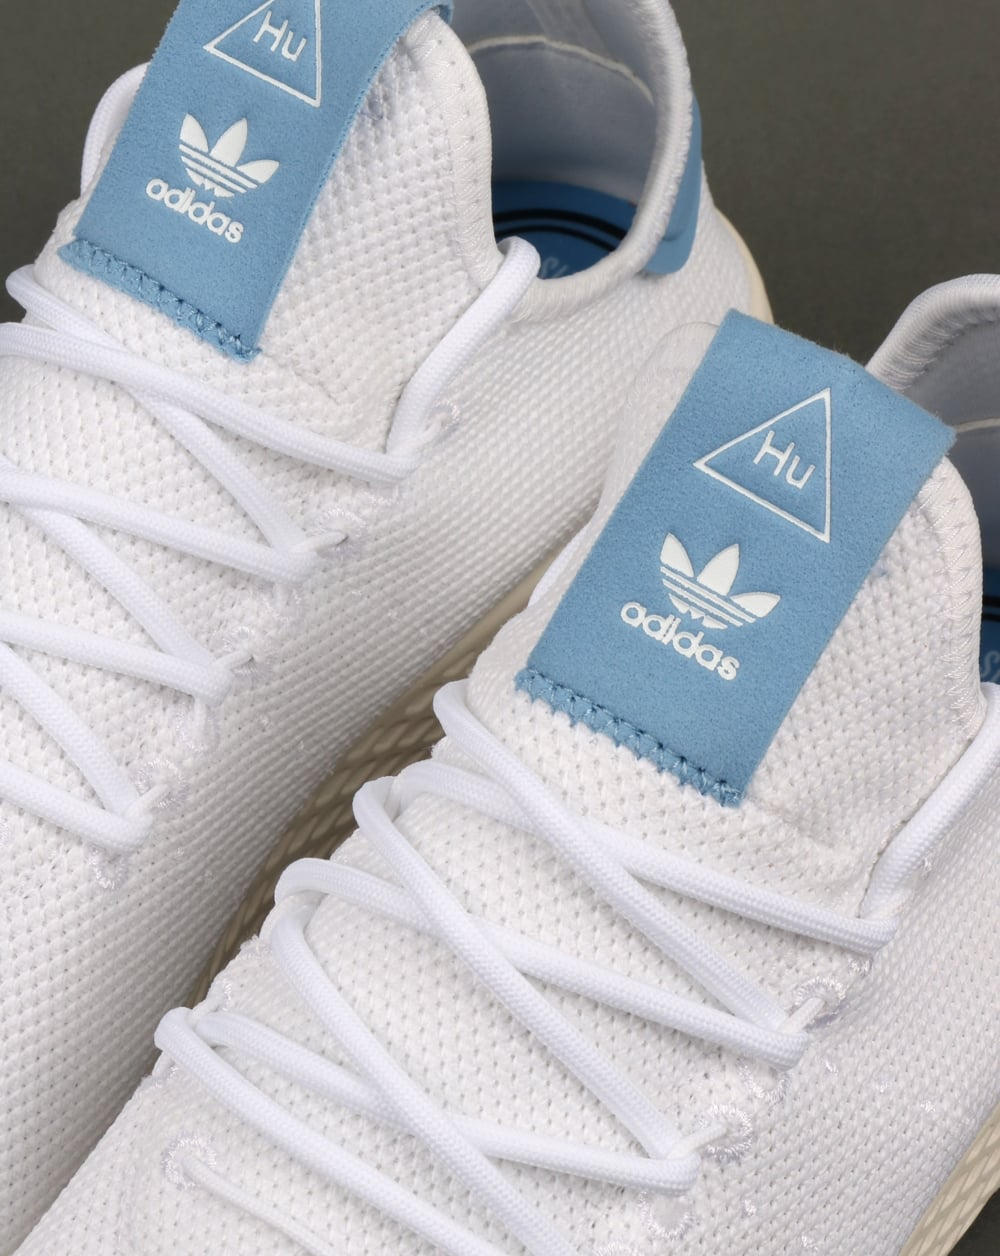 904ebaf2d Adidas PW Tennis HU Trainers White Sky Blue